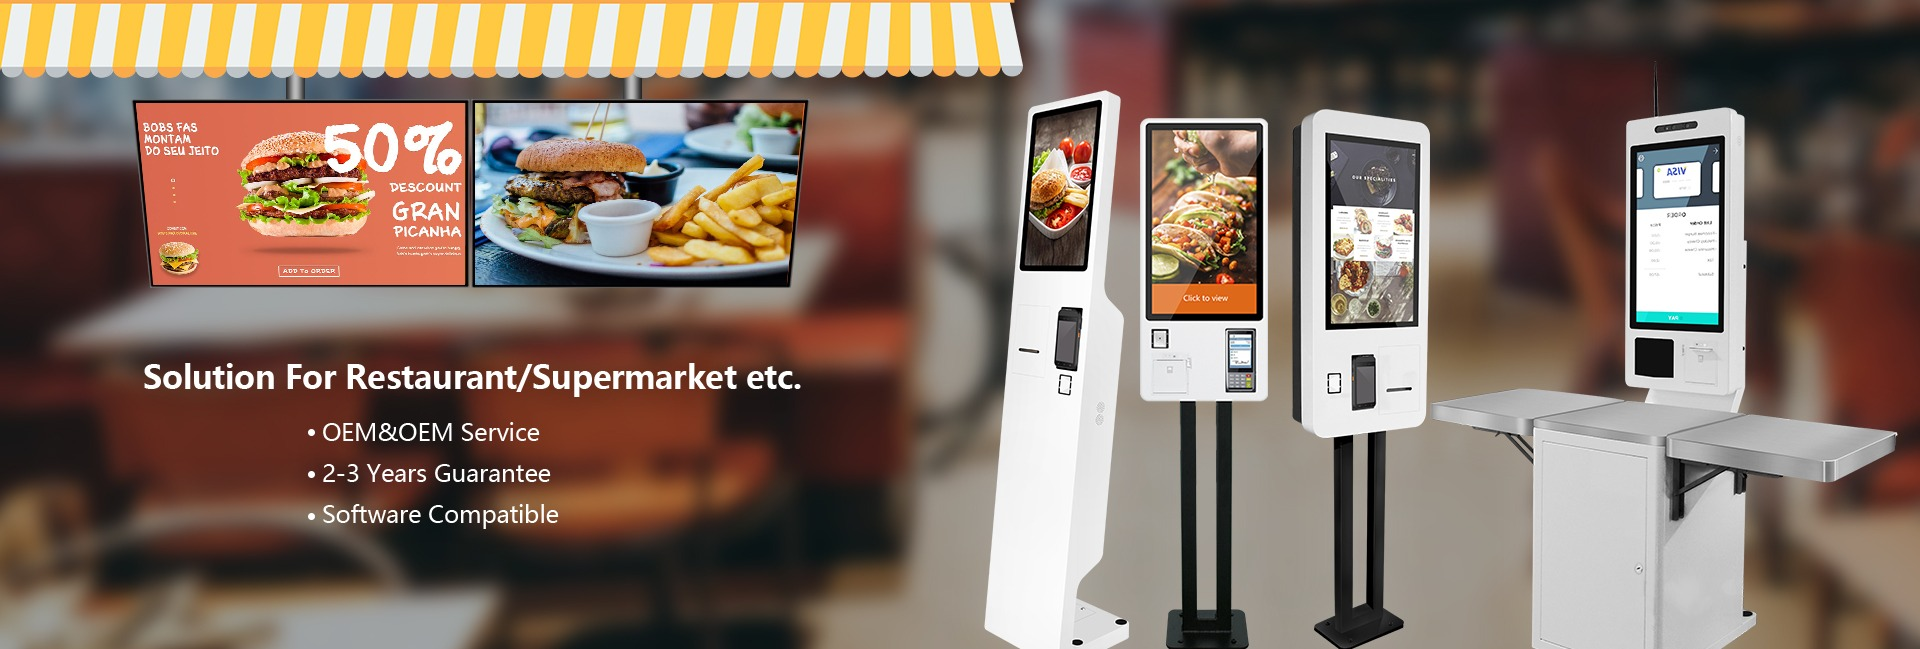 basic pos system Digital Screens and self order kiosk